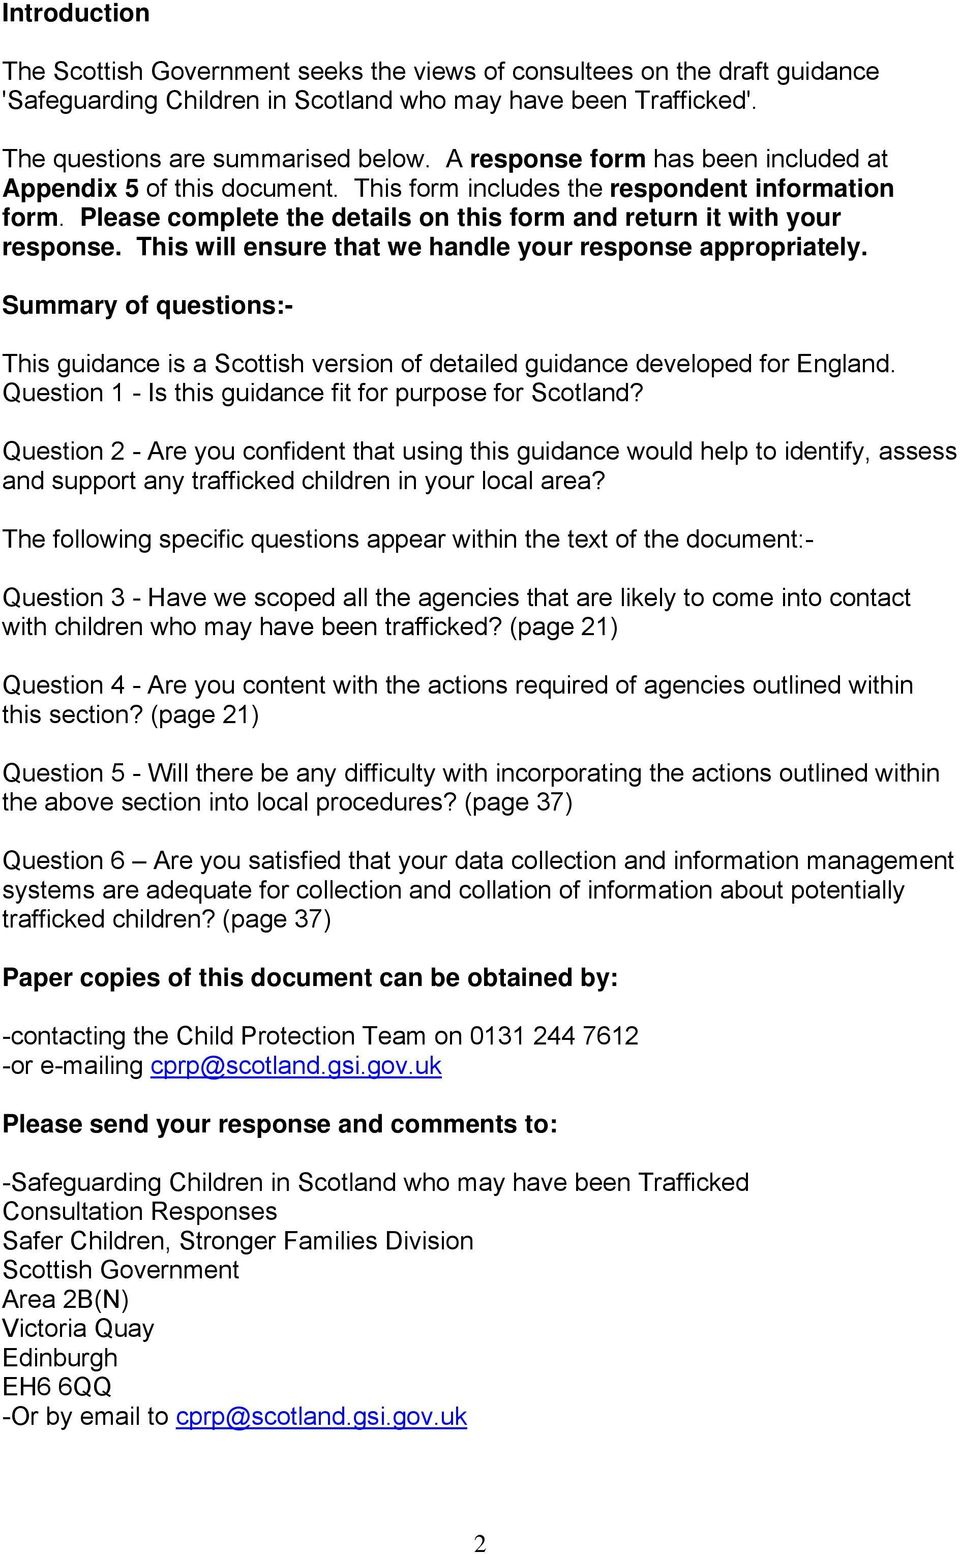 This will ensure that we handle your response appropriately. Summary of questions:- This guidance is a Scottish version of detailed guidance developed for England.